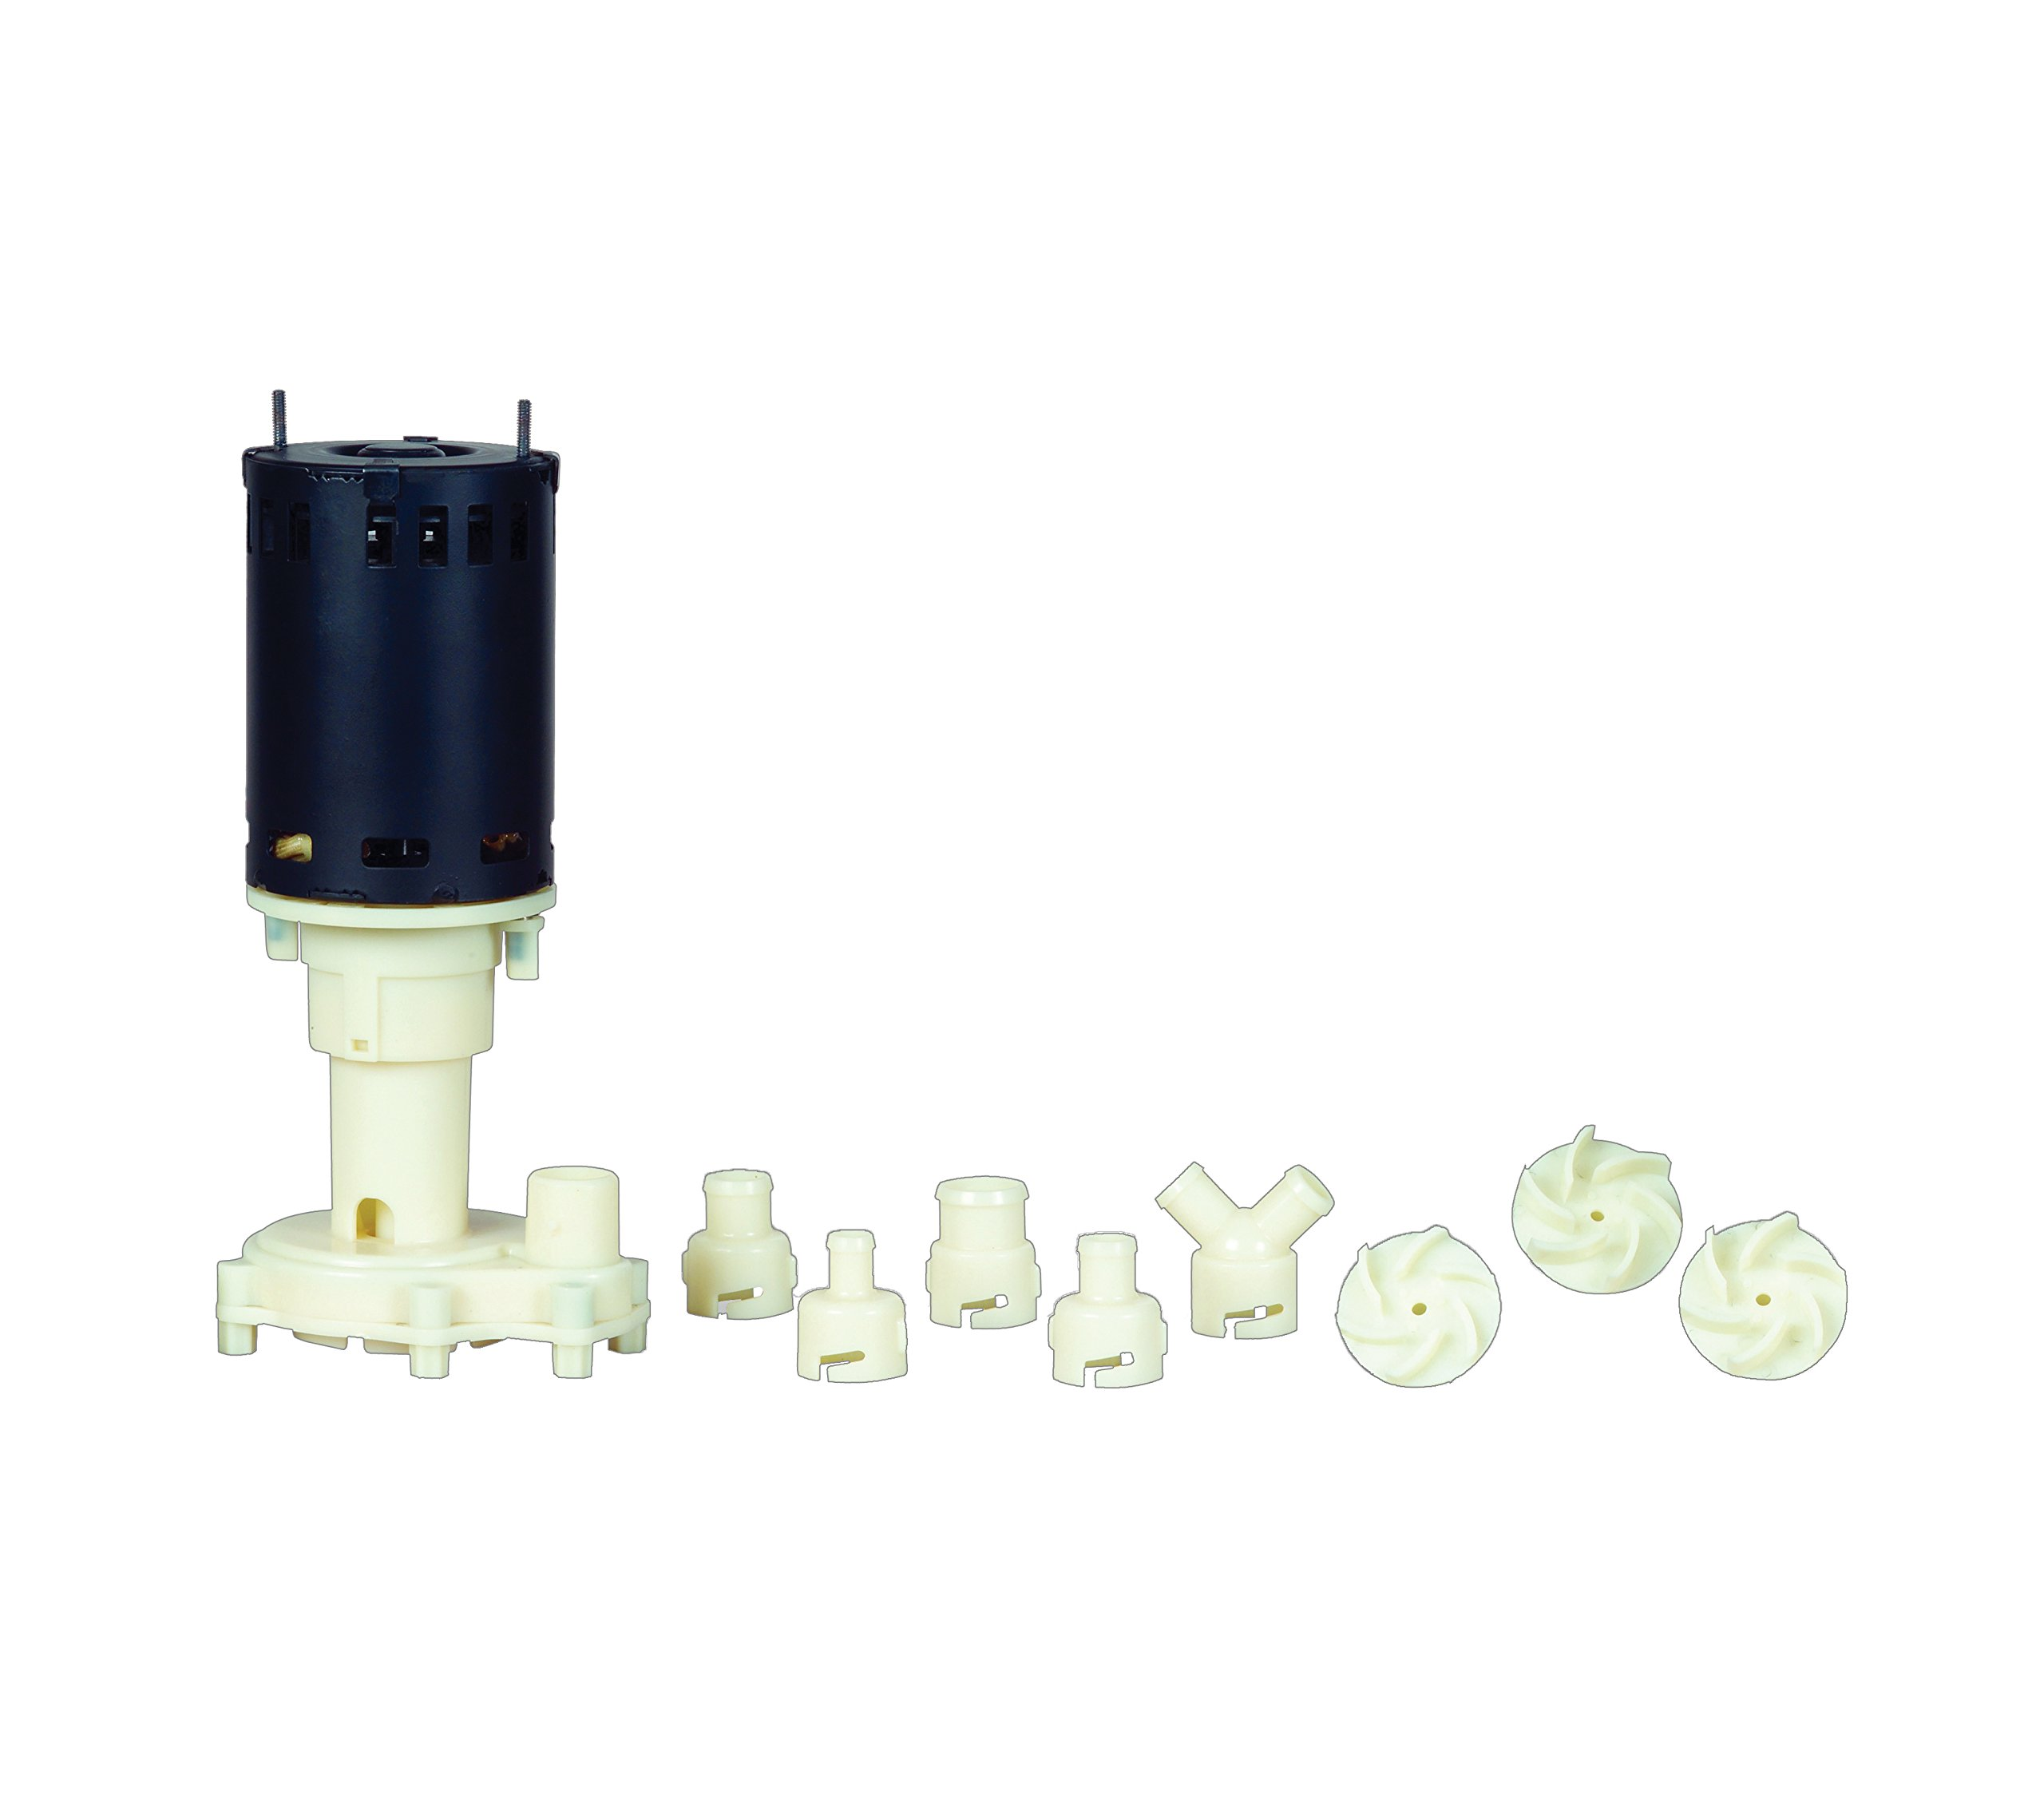 Little Giant 545600 Ice Machine Replacement Pump, 115/230 Volt, 1/25 HP, 585 GPH by LITTLE GIANT